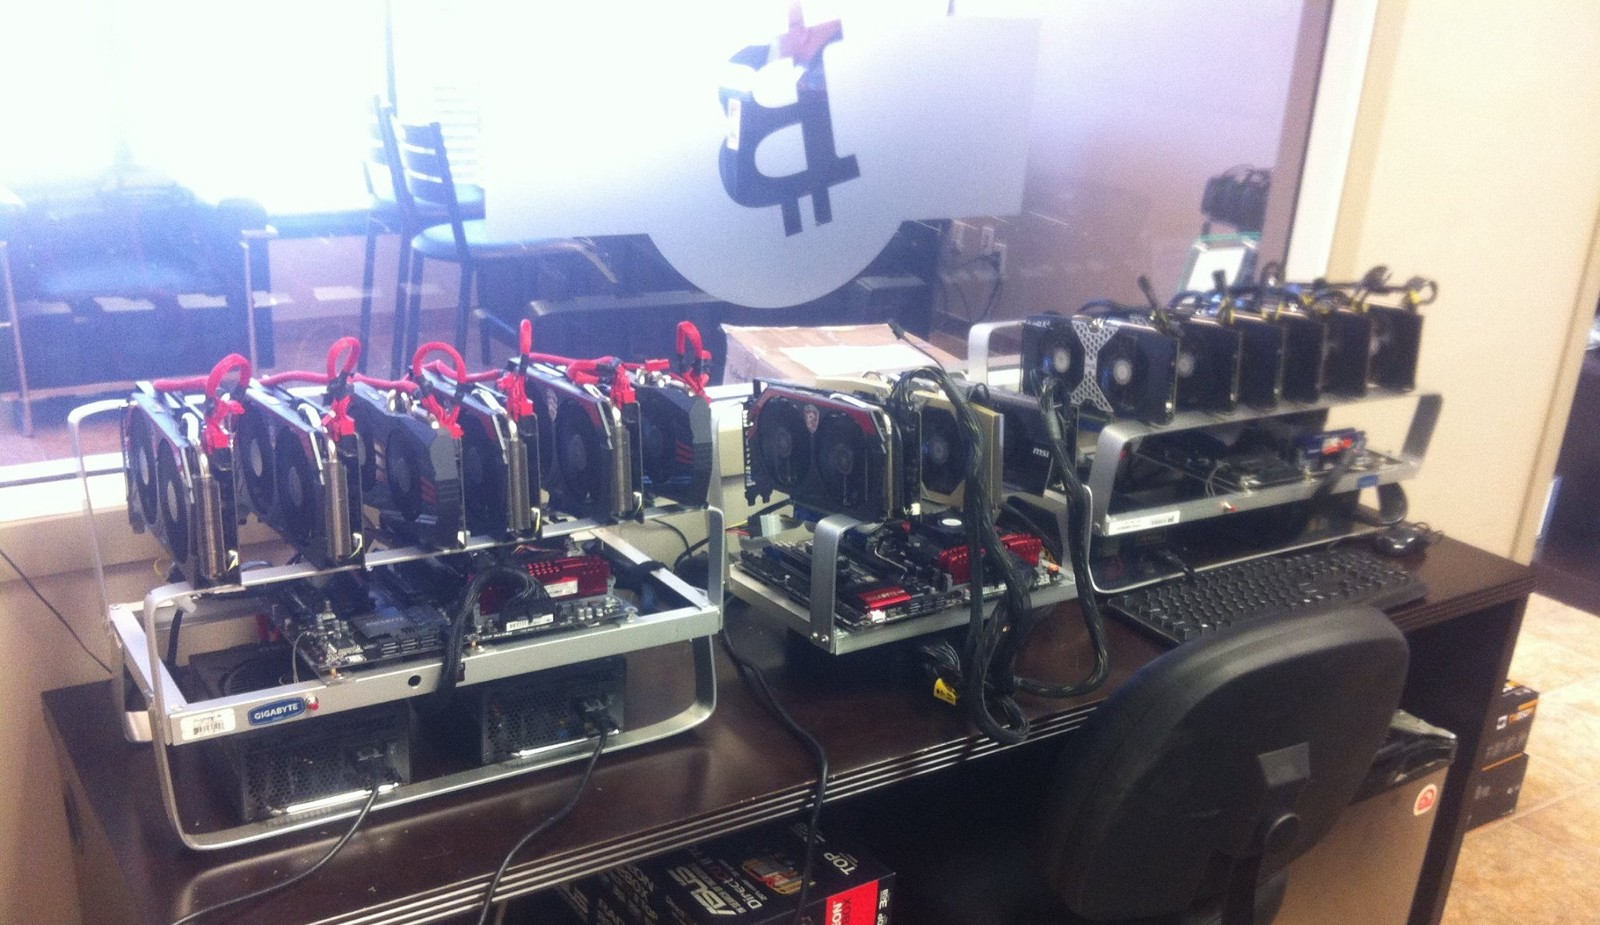 litecoin cryptocurrency mining rig